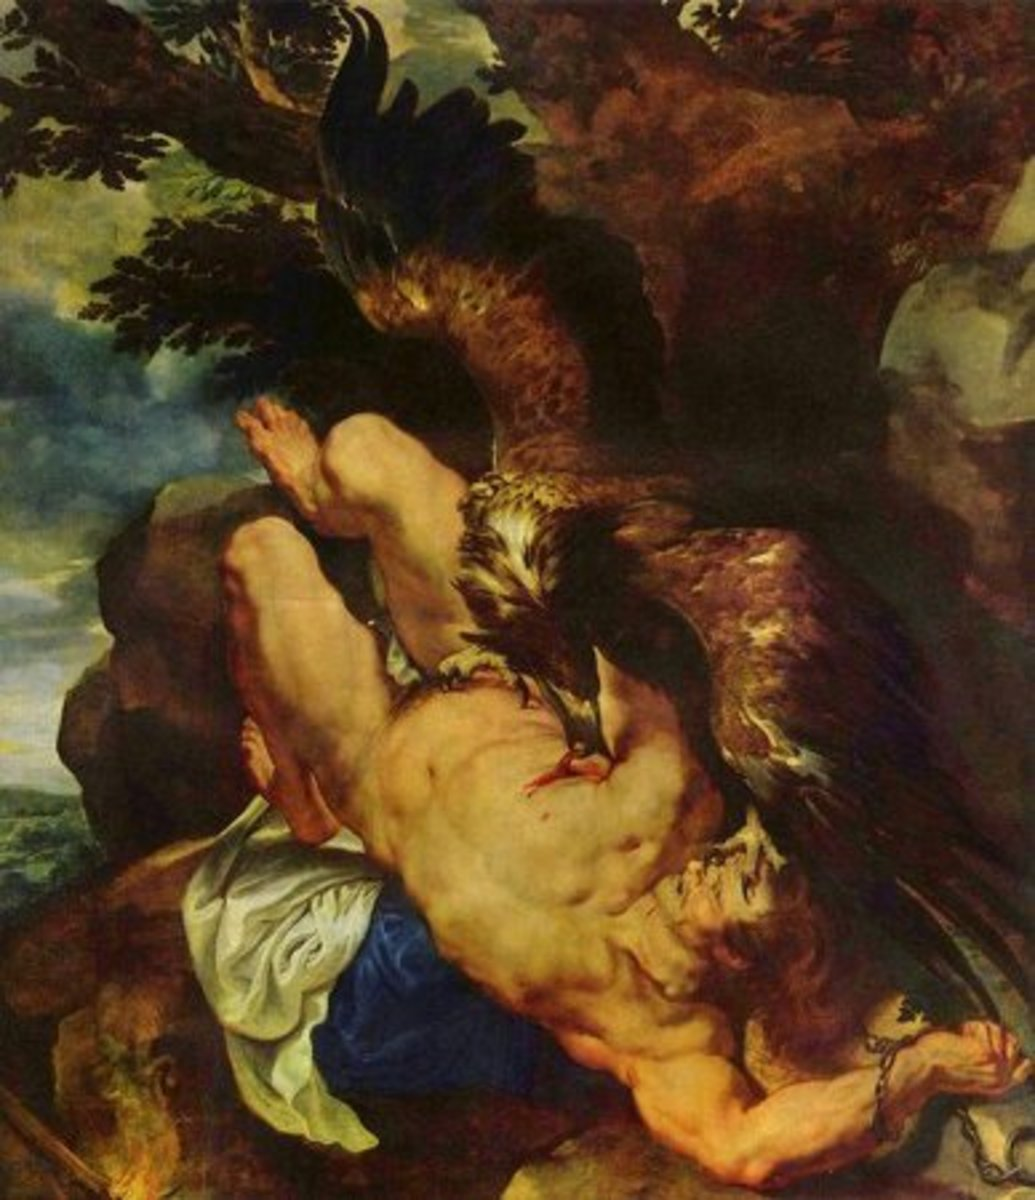 The punishment of Prometheus